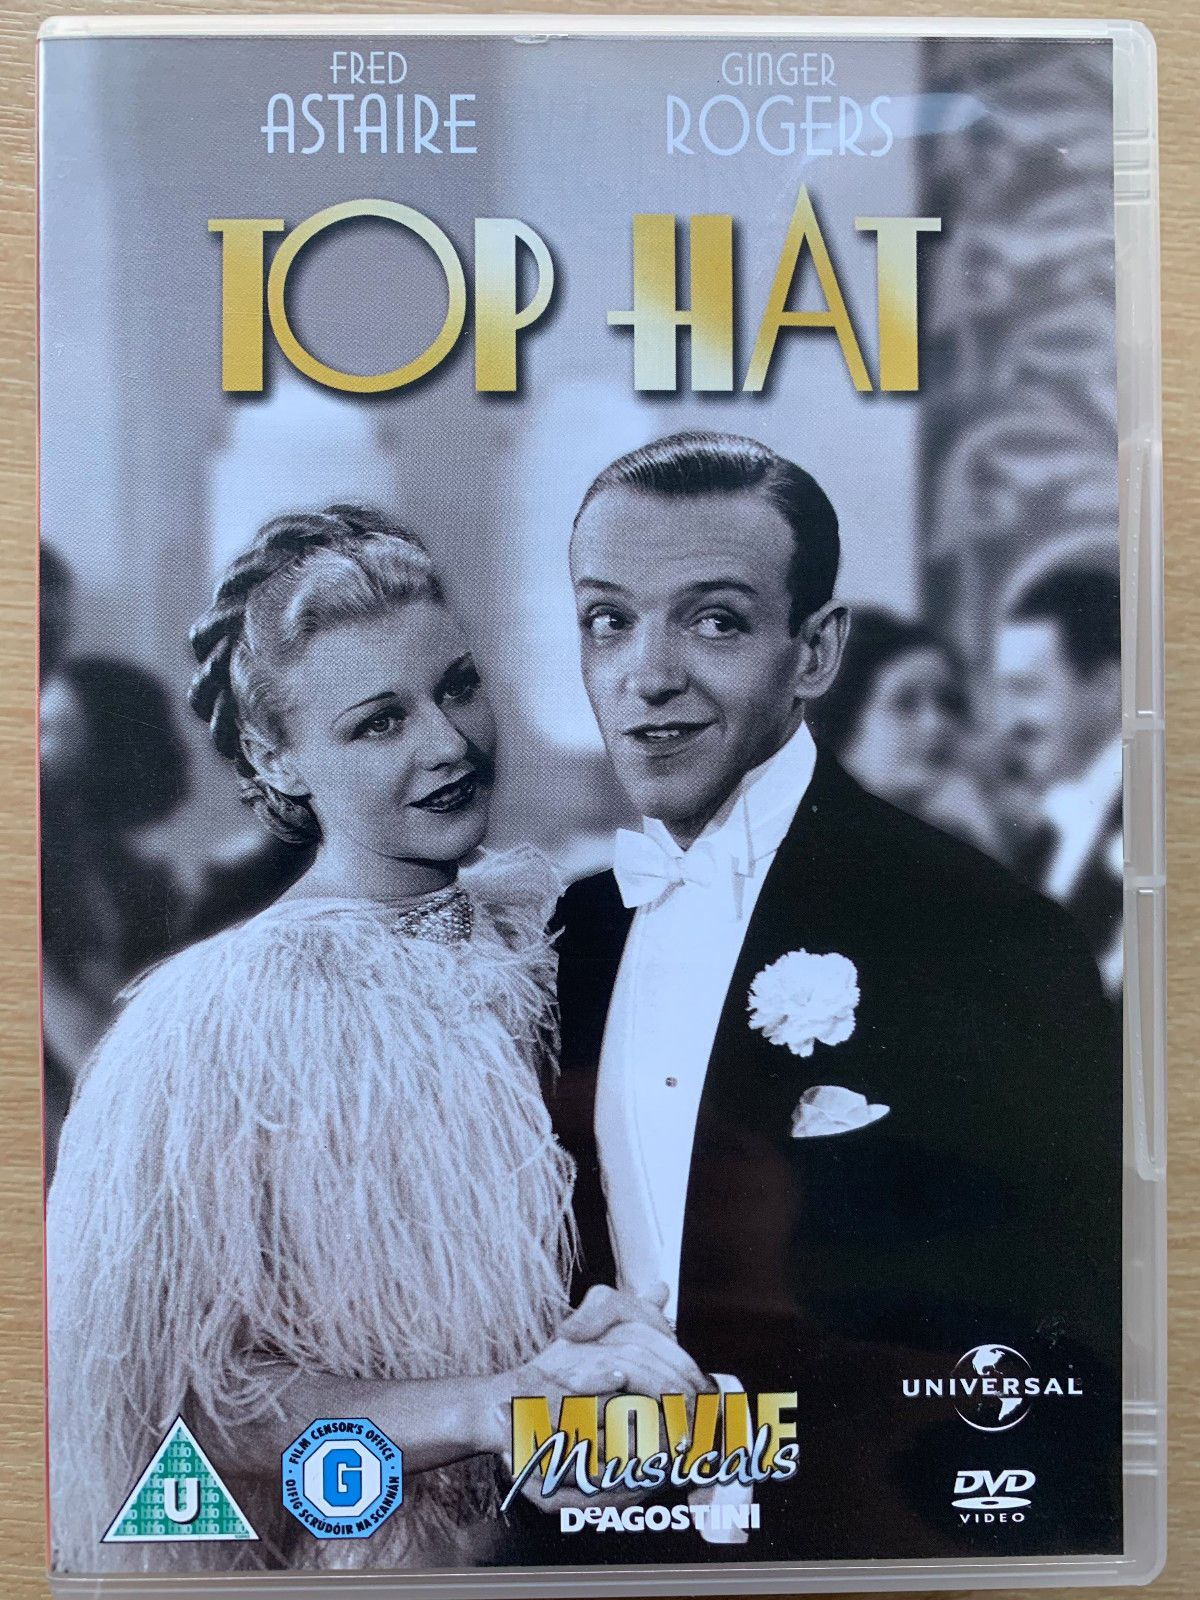 Fred Astaire Ginger Rogers Top Hat 1935 Hollywood Musical Classic Uk Dvd 12 50 This Is A Region 2 Dvd From The U Fred Astaire Ginger Rogers Fred And Ginger